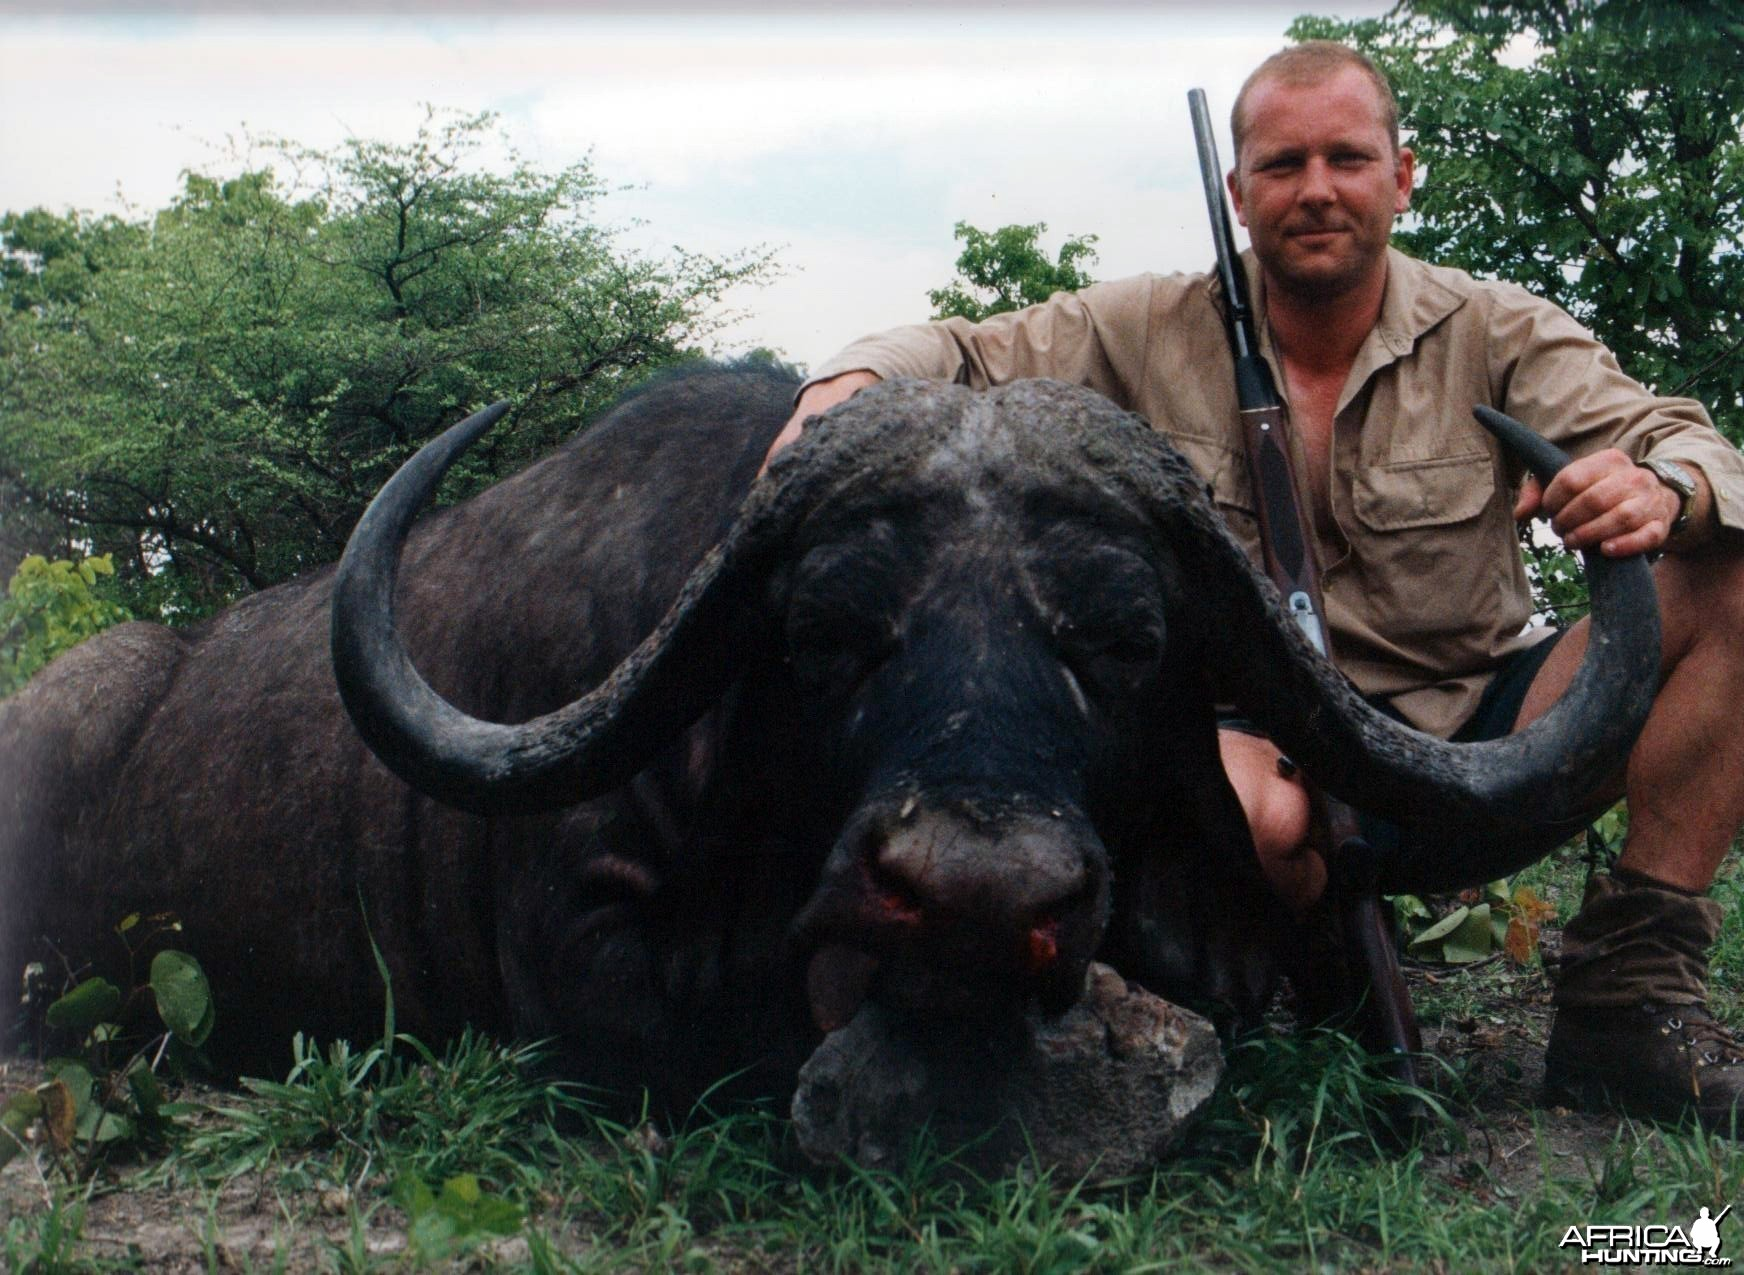 My Cape Buffalo hunted in Zimbabwe 43 inches